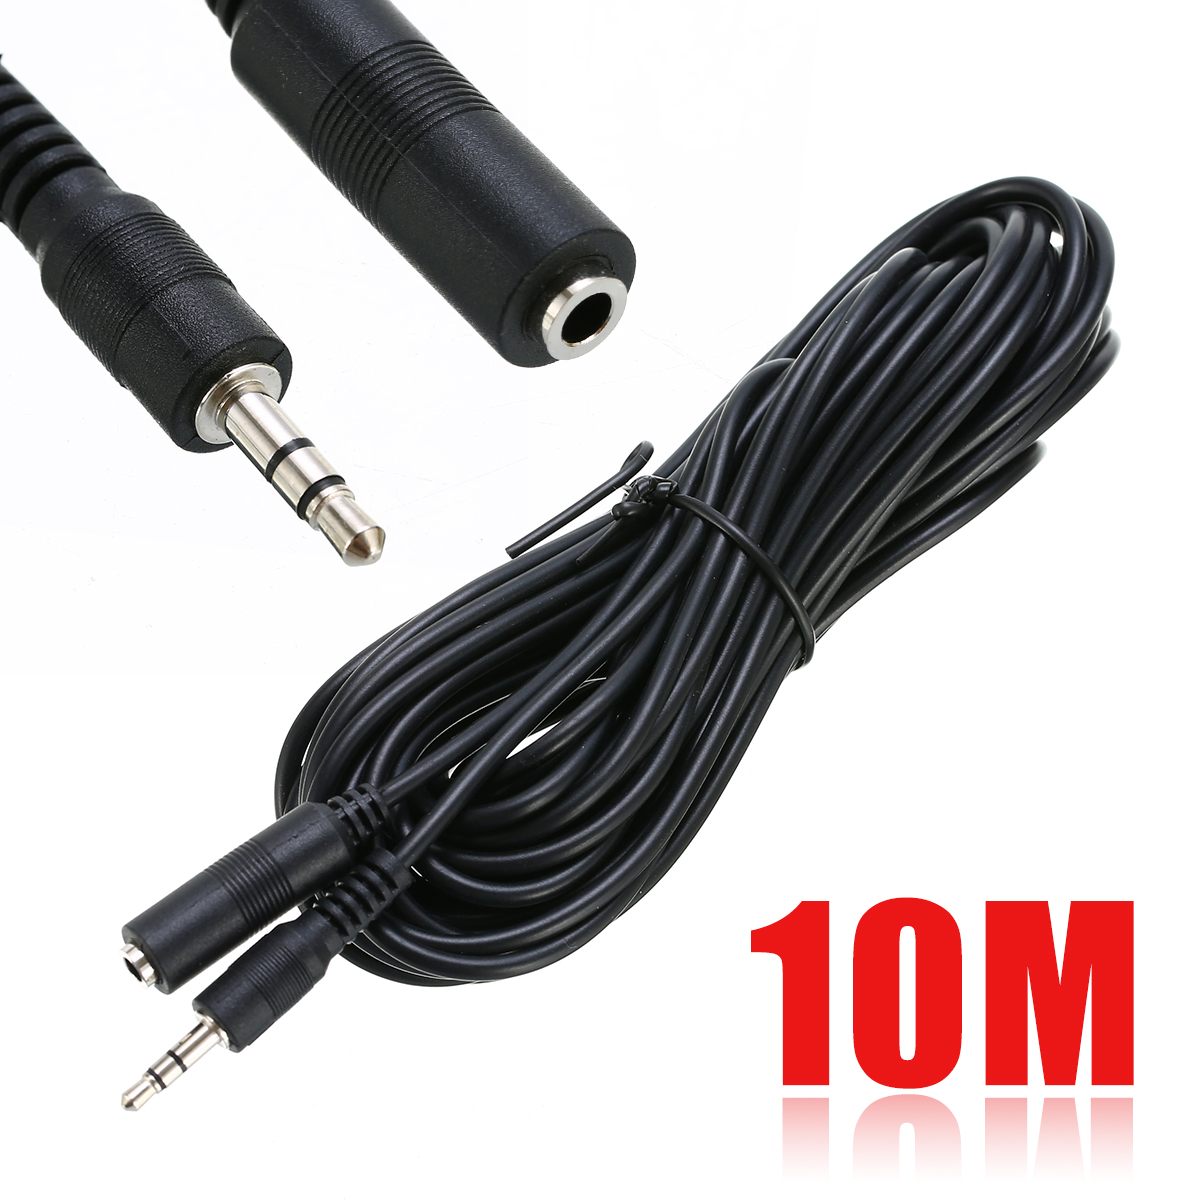 Vbestlife 1pcs 10m 35mm Ir Receiver Infrared Repeater Headphone Headphones Circuit Mayitr Extender Cable Extension Wire Plug